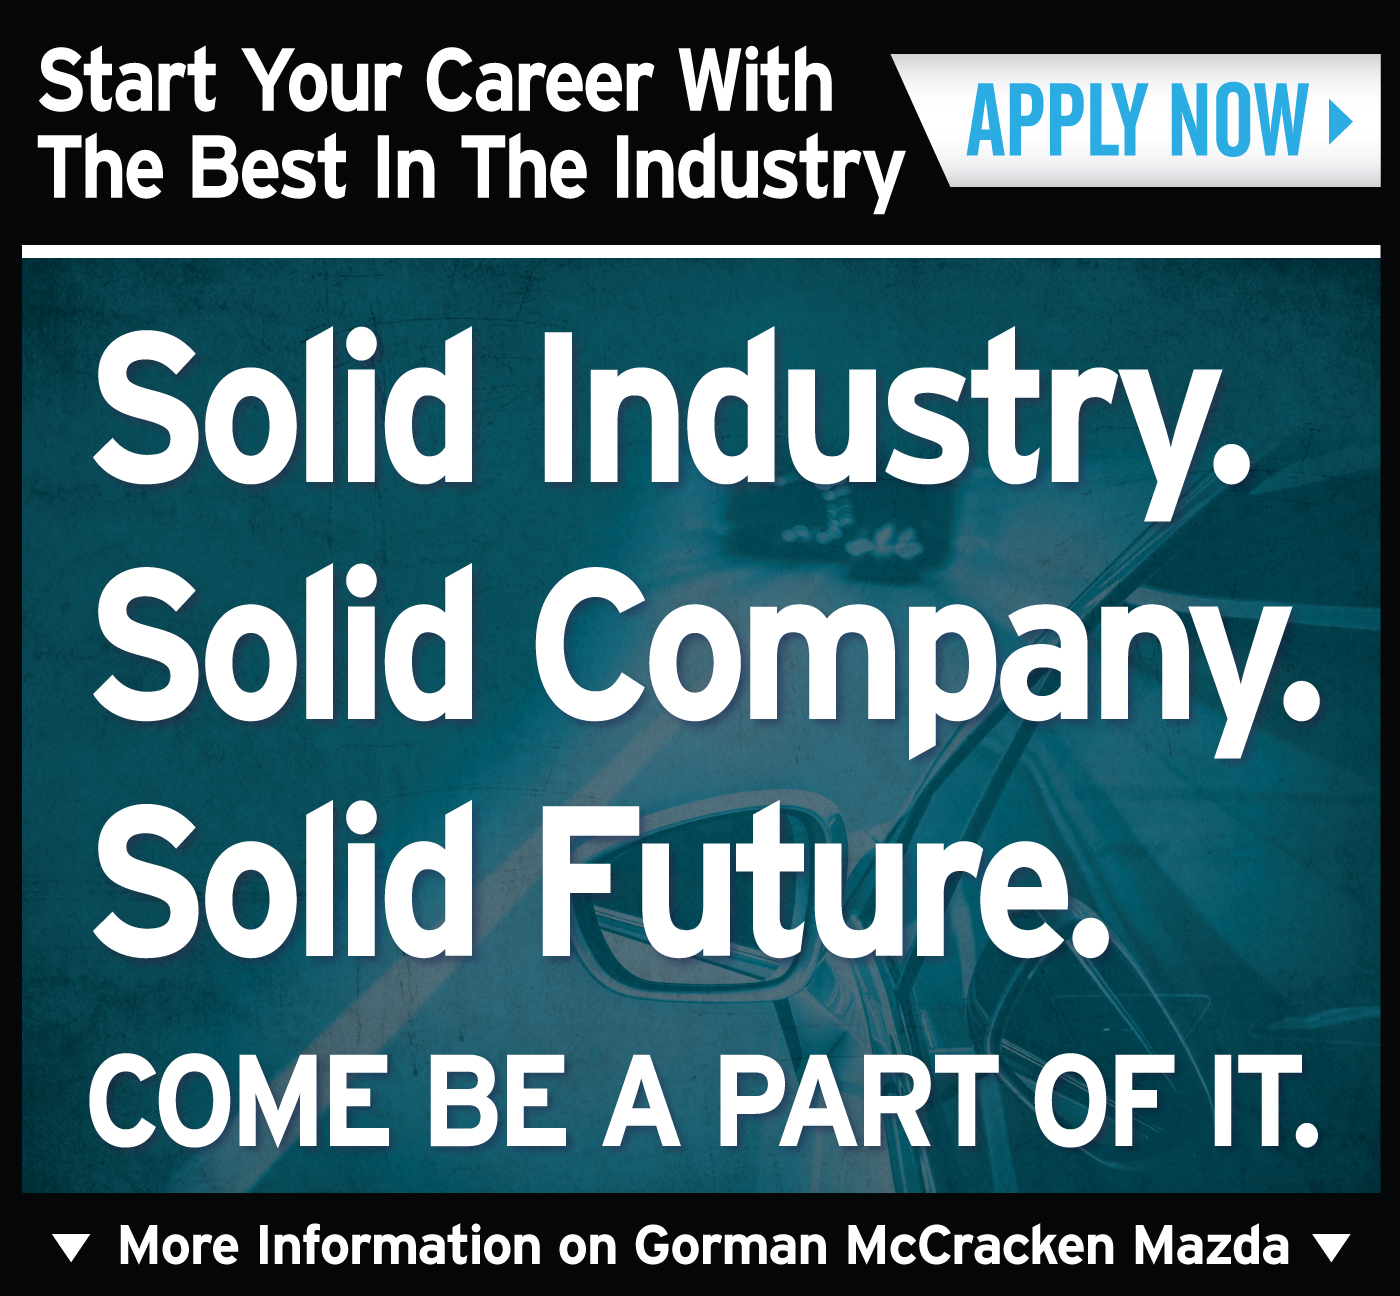 automotive s and mechanic jobs in longview tx start your career gorman mccracken mazda